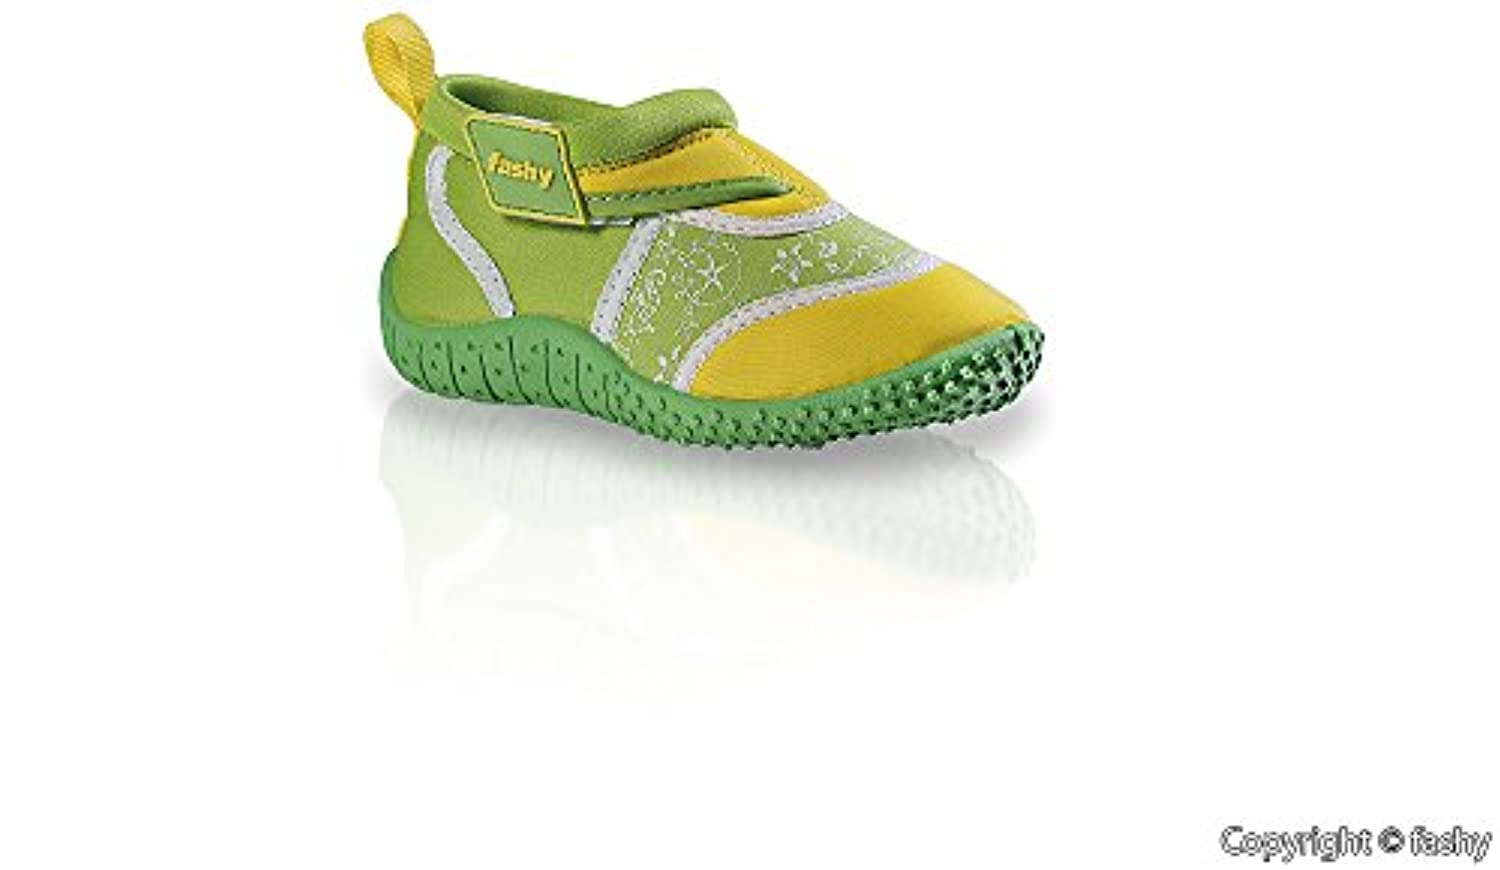 Fashy Kleinkinder Outdoor Sports and Schwimmschuhe Aqua Shoes Velcro and TPR sole Neoprene & Mesh, Children (Unisex), Blau/Gelb